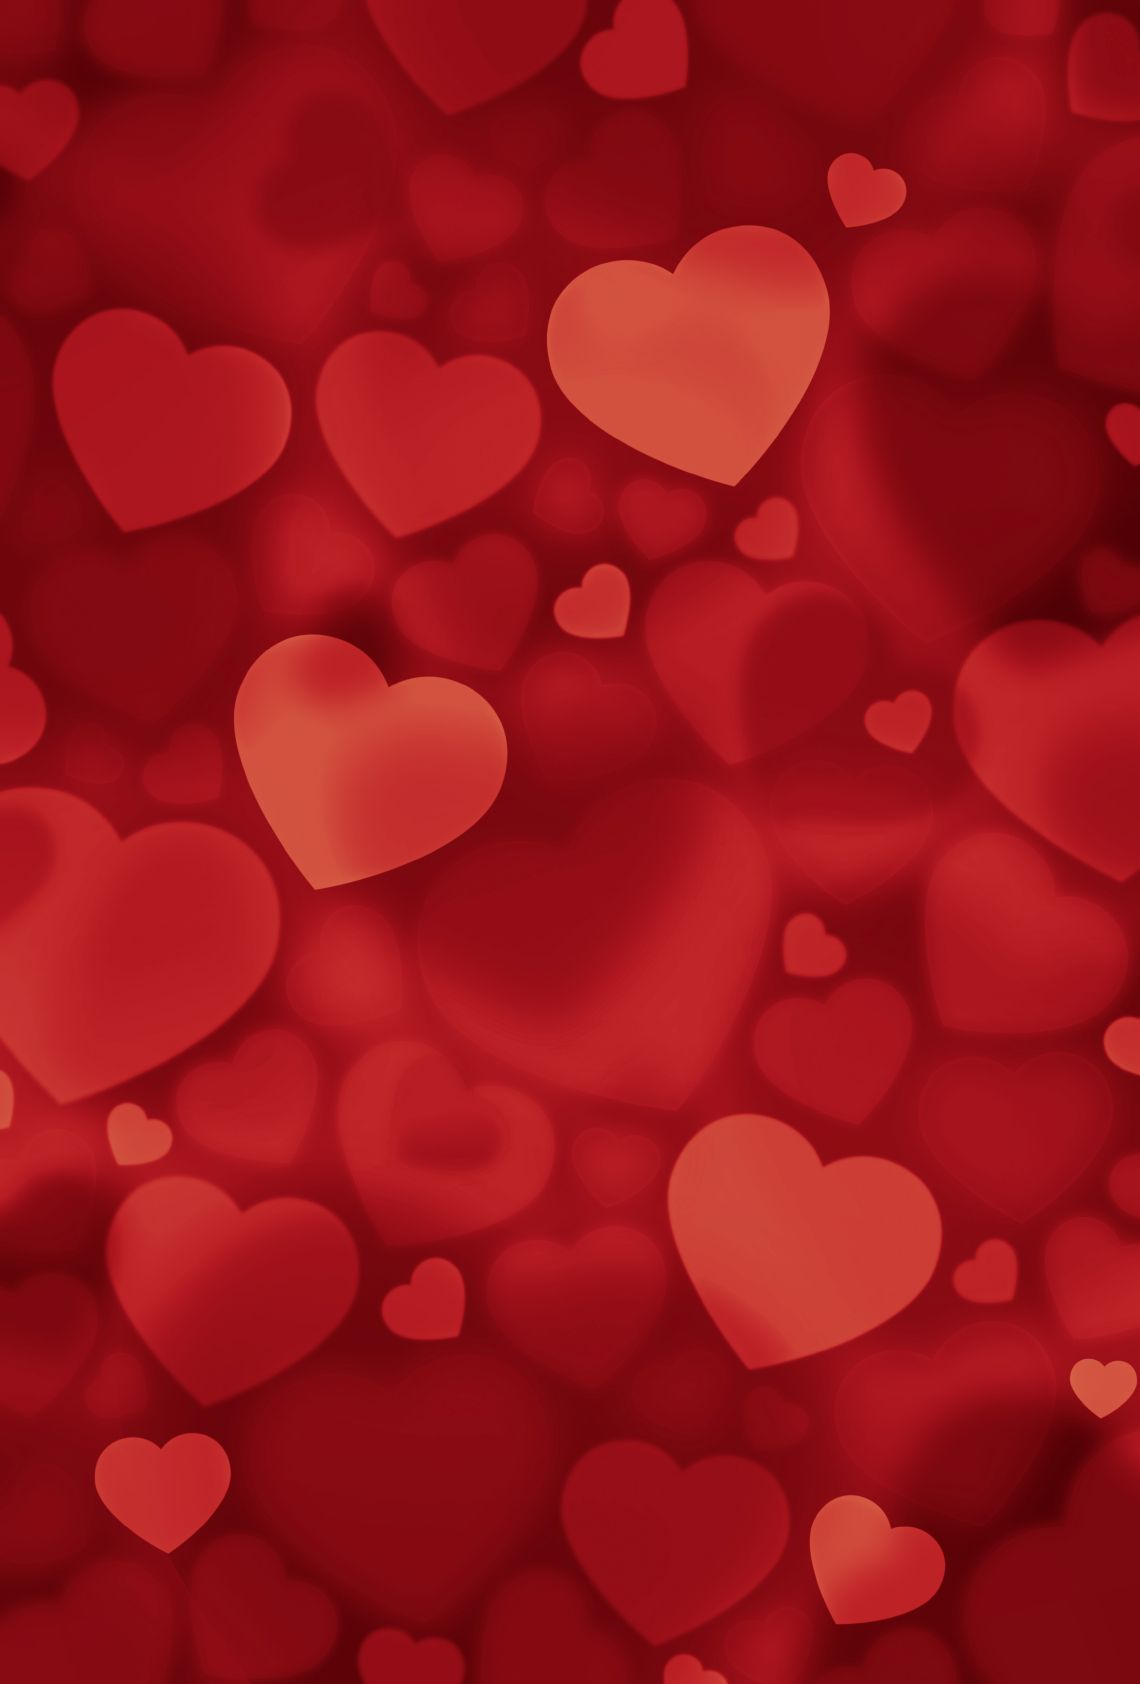 Red Hearts Wallpaper Red Heart Heart Backgrounds Heart Background